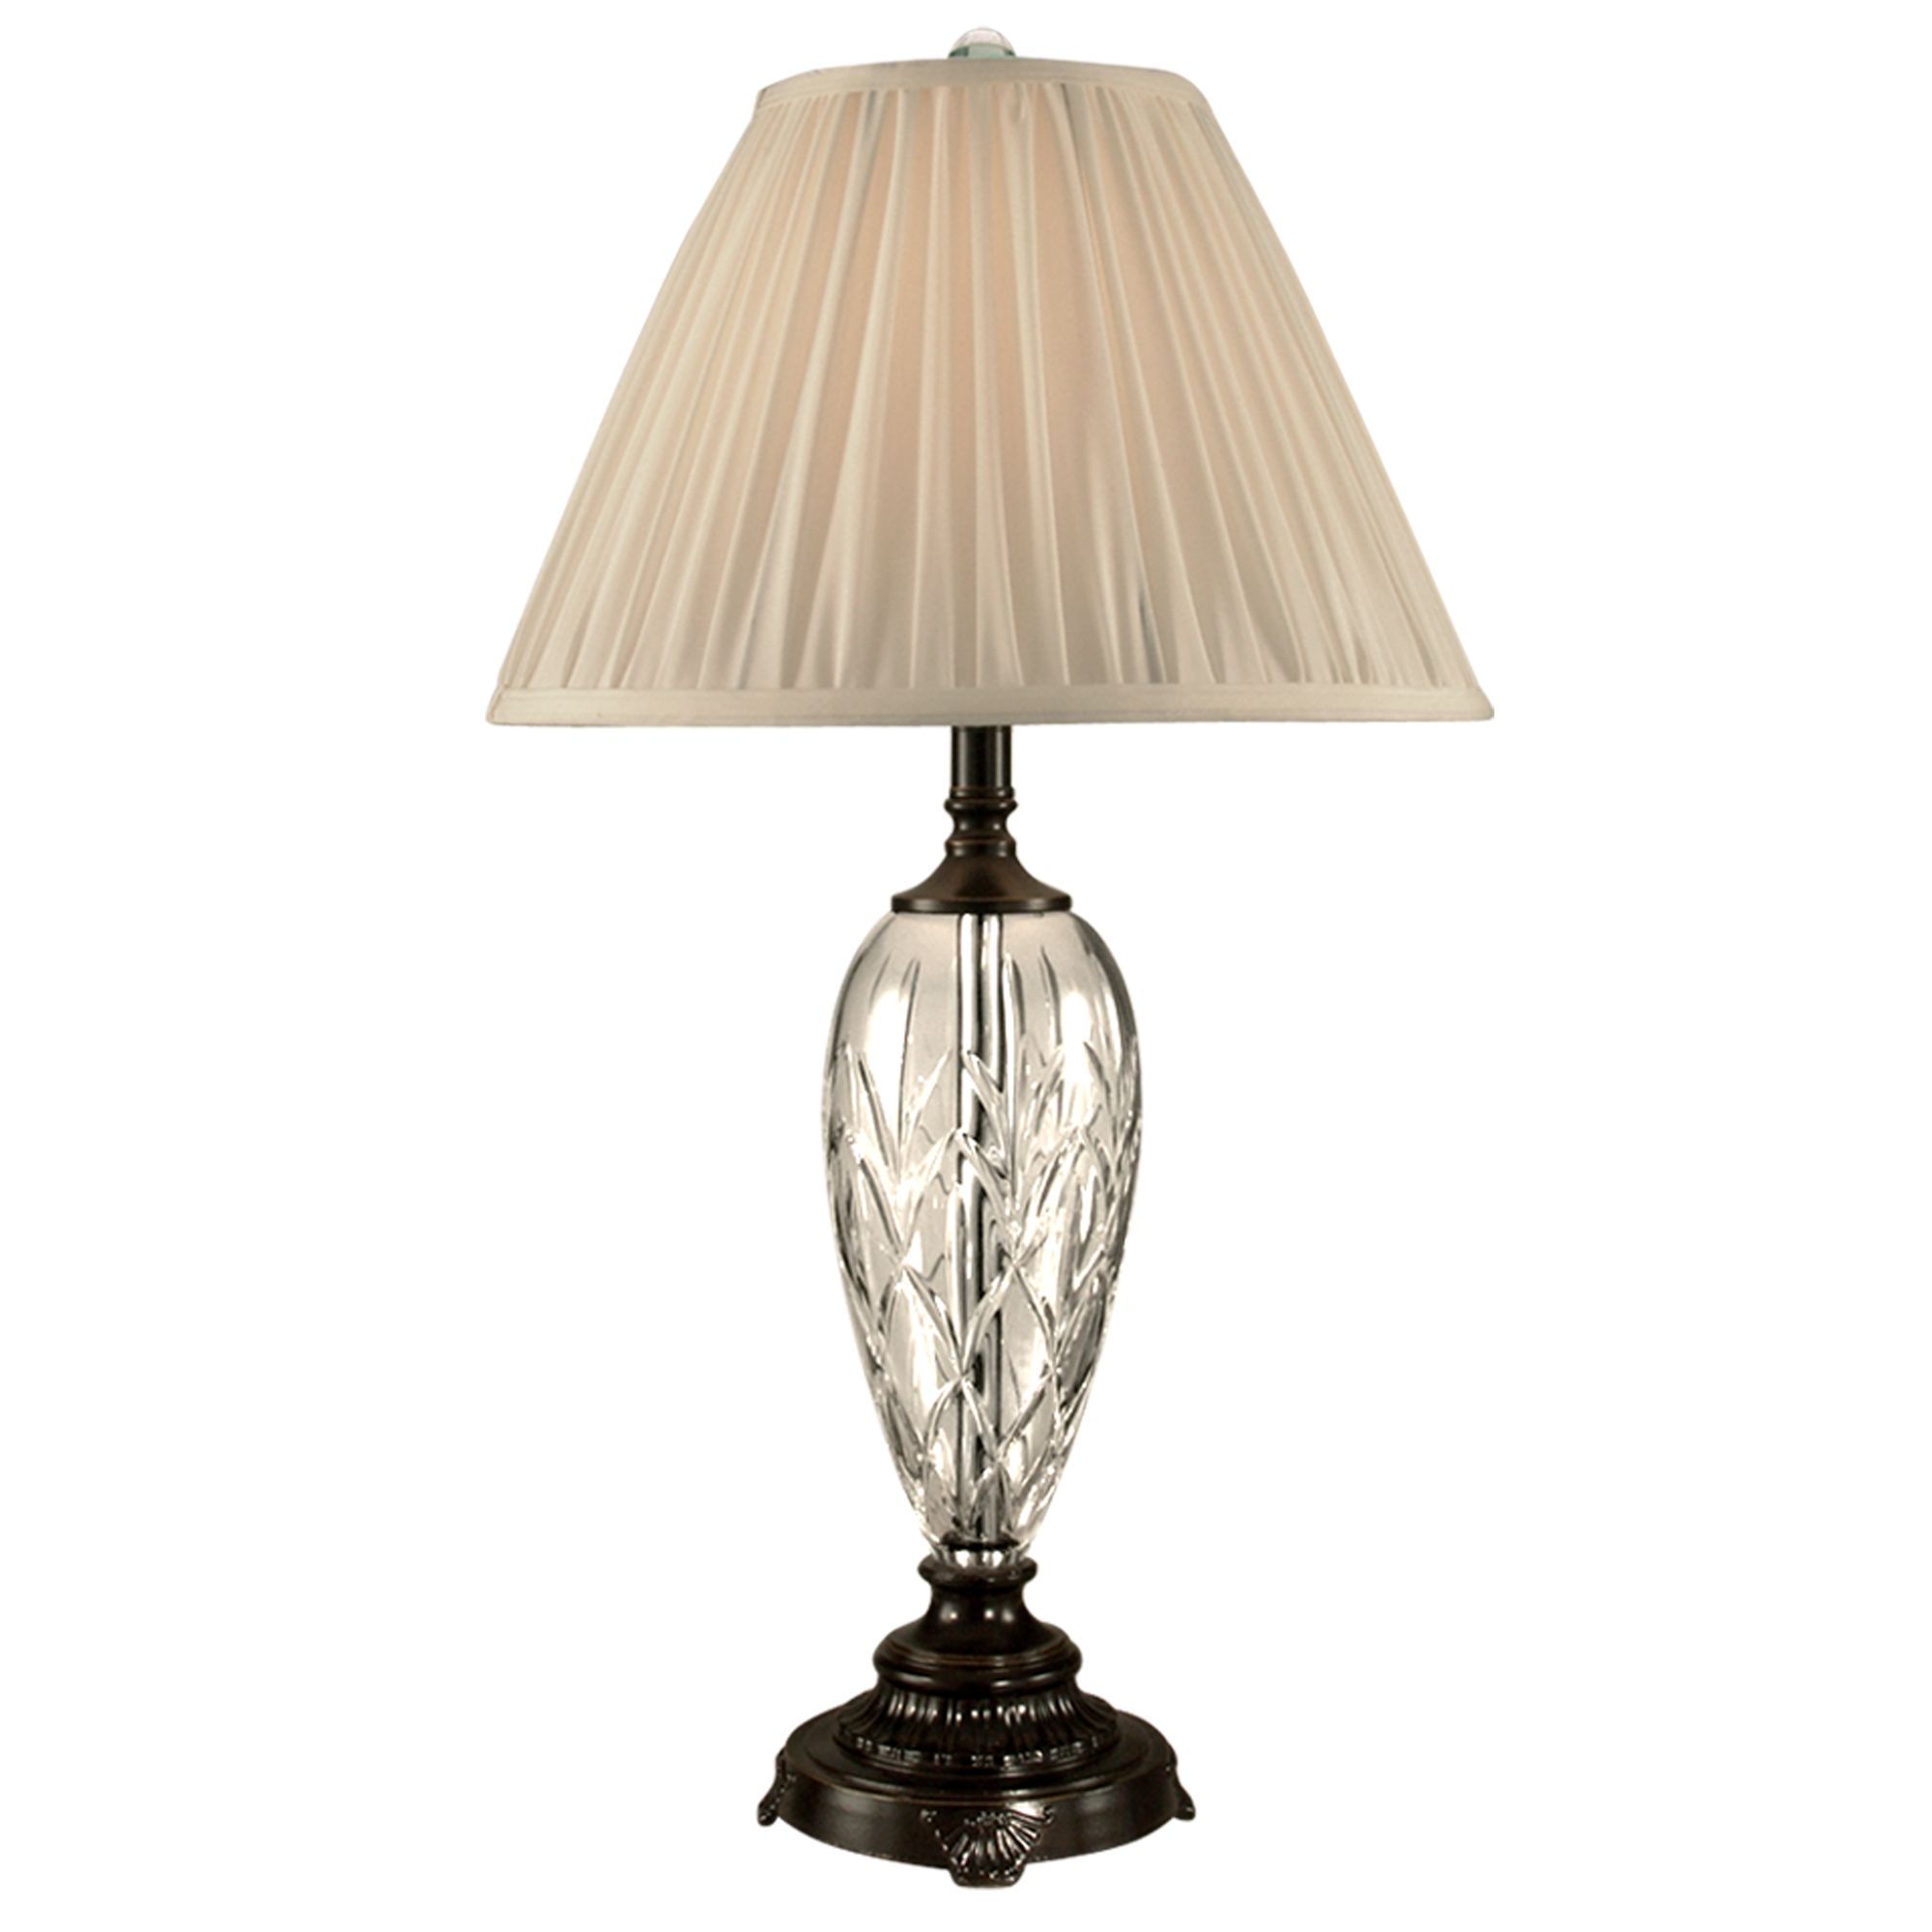 Dale Tiffany Lucy Crystal Table Lamp - Home Decor